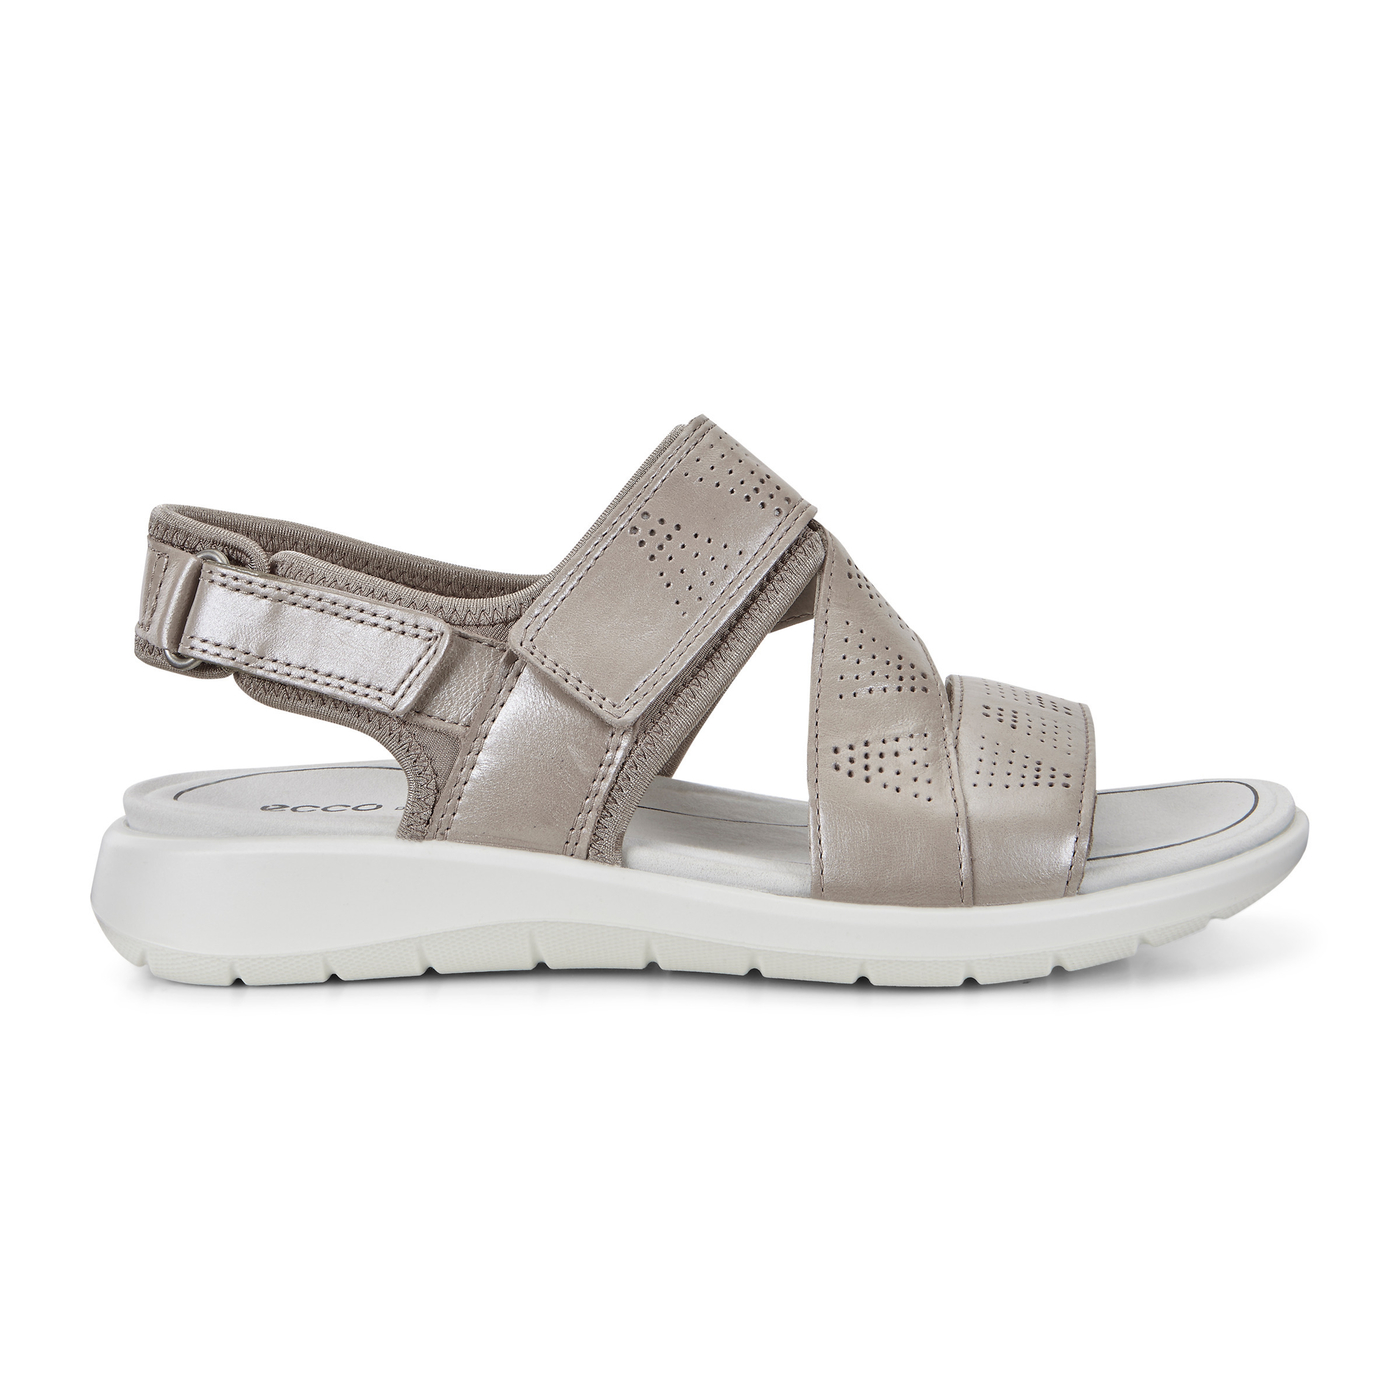 ECCO Soft 5 Cross Strap Sandal